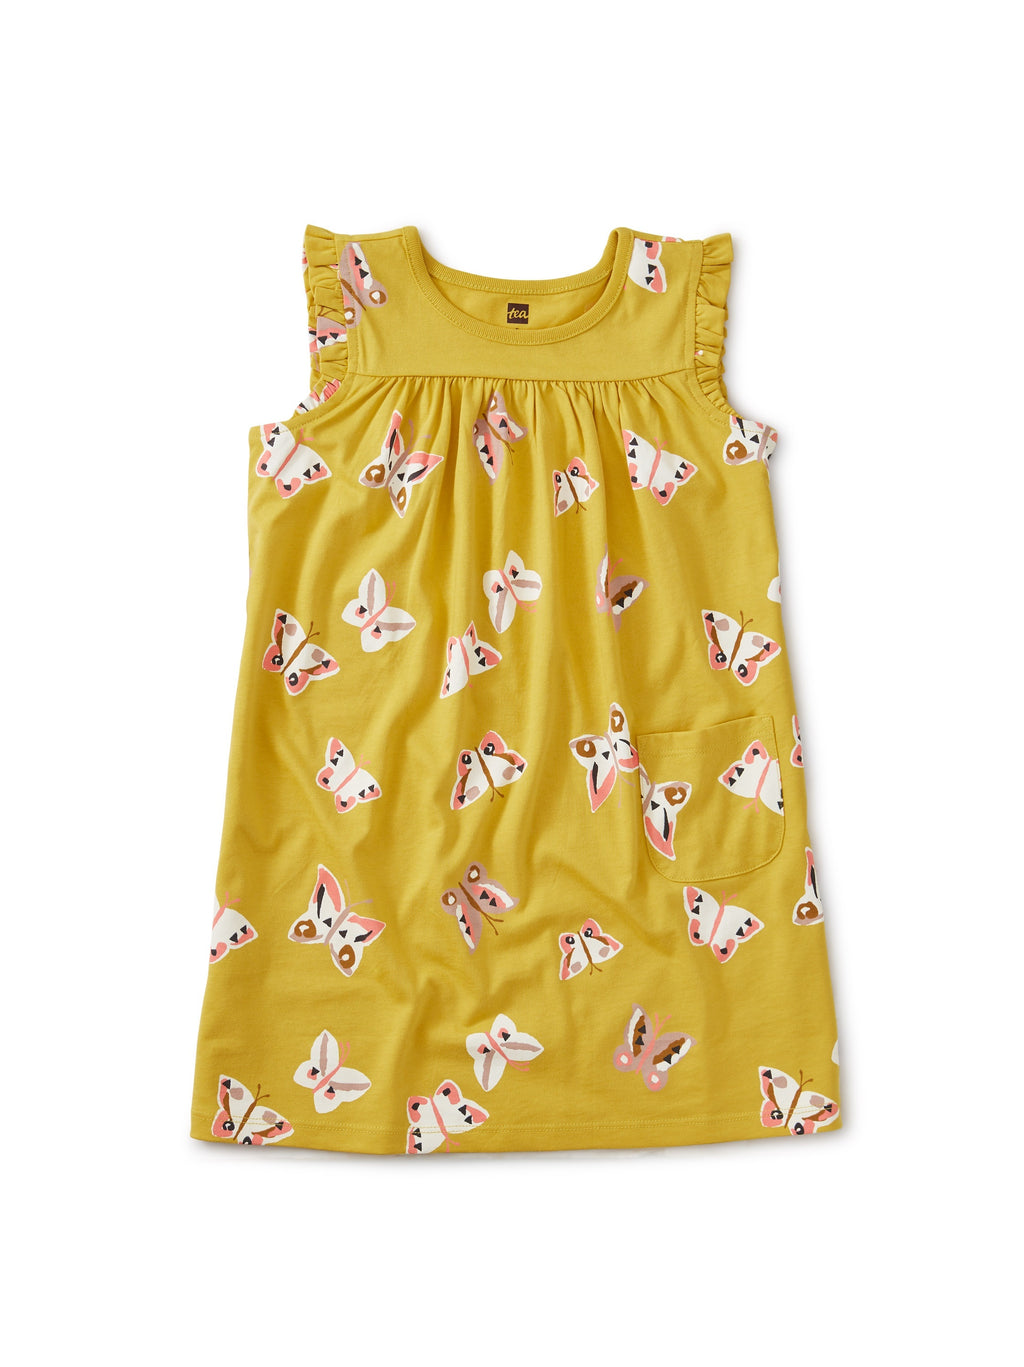 Cotton Jersey Mustard Butterly Dress (2-12Y)